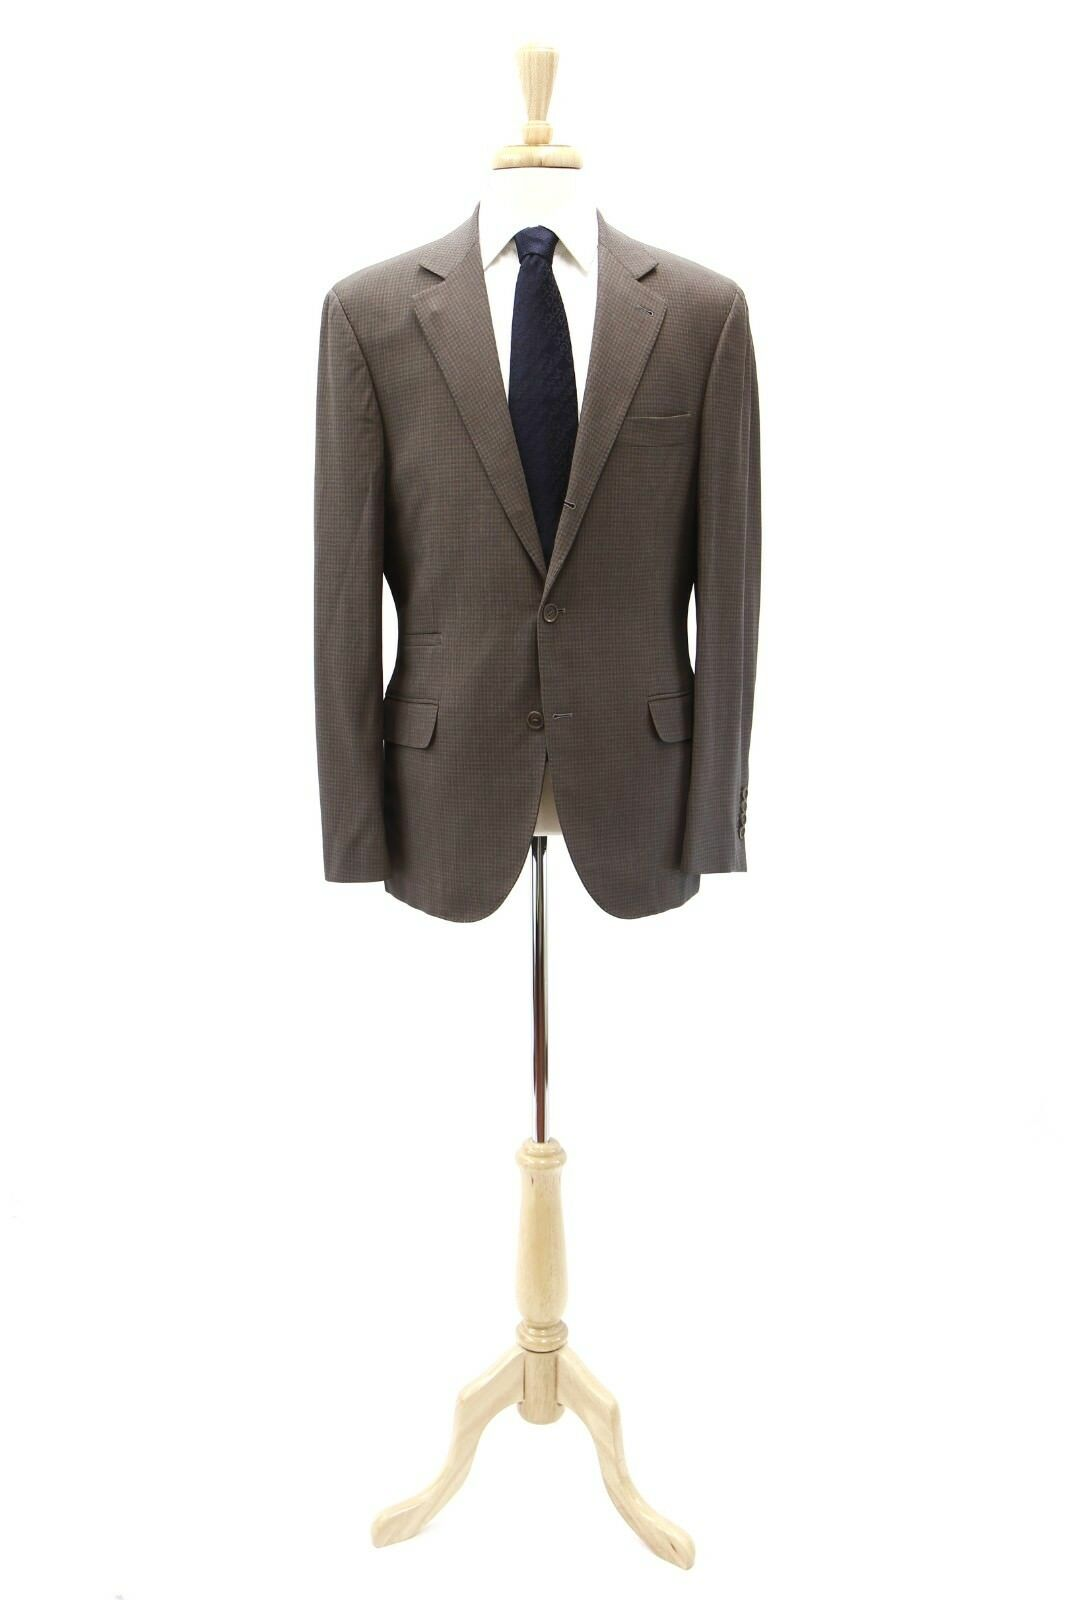 NWT Brunello Cucinelli Mohair-Silk-Wool Houndstooth Print SportCoat 52/42US A181